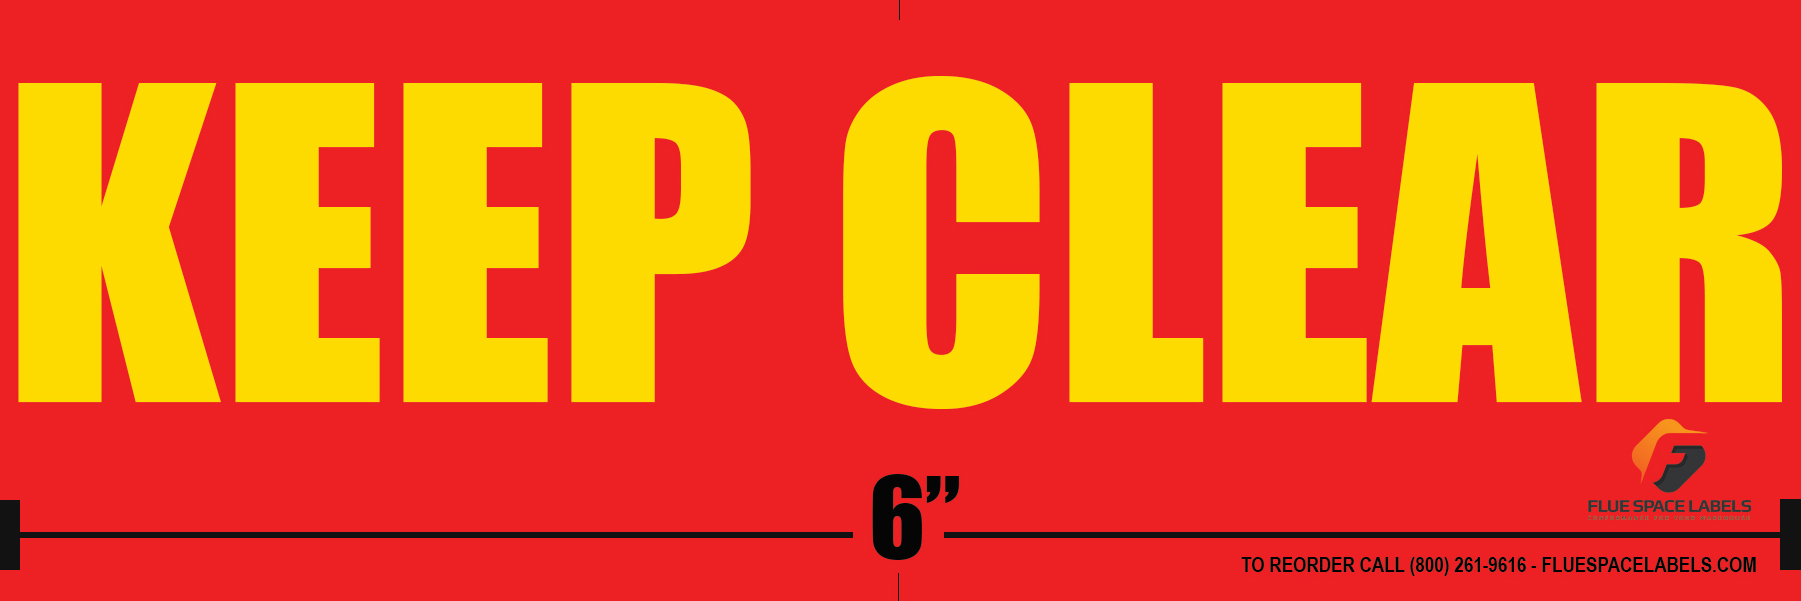 Red Background with Yellow Fonts Flue Space Labels